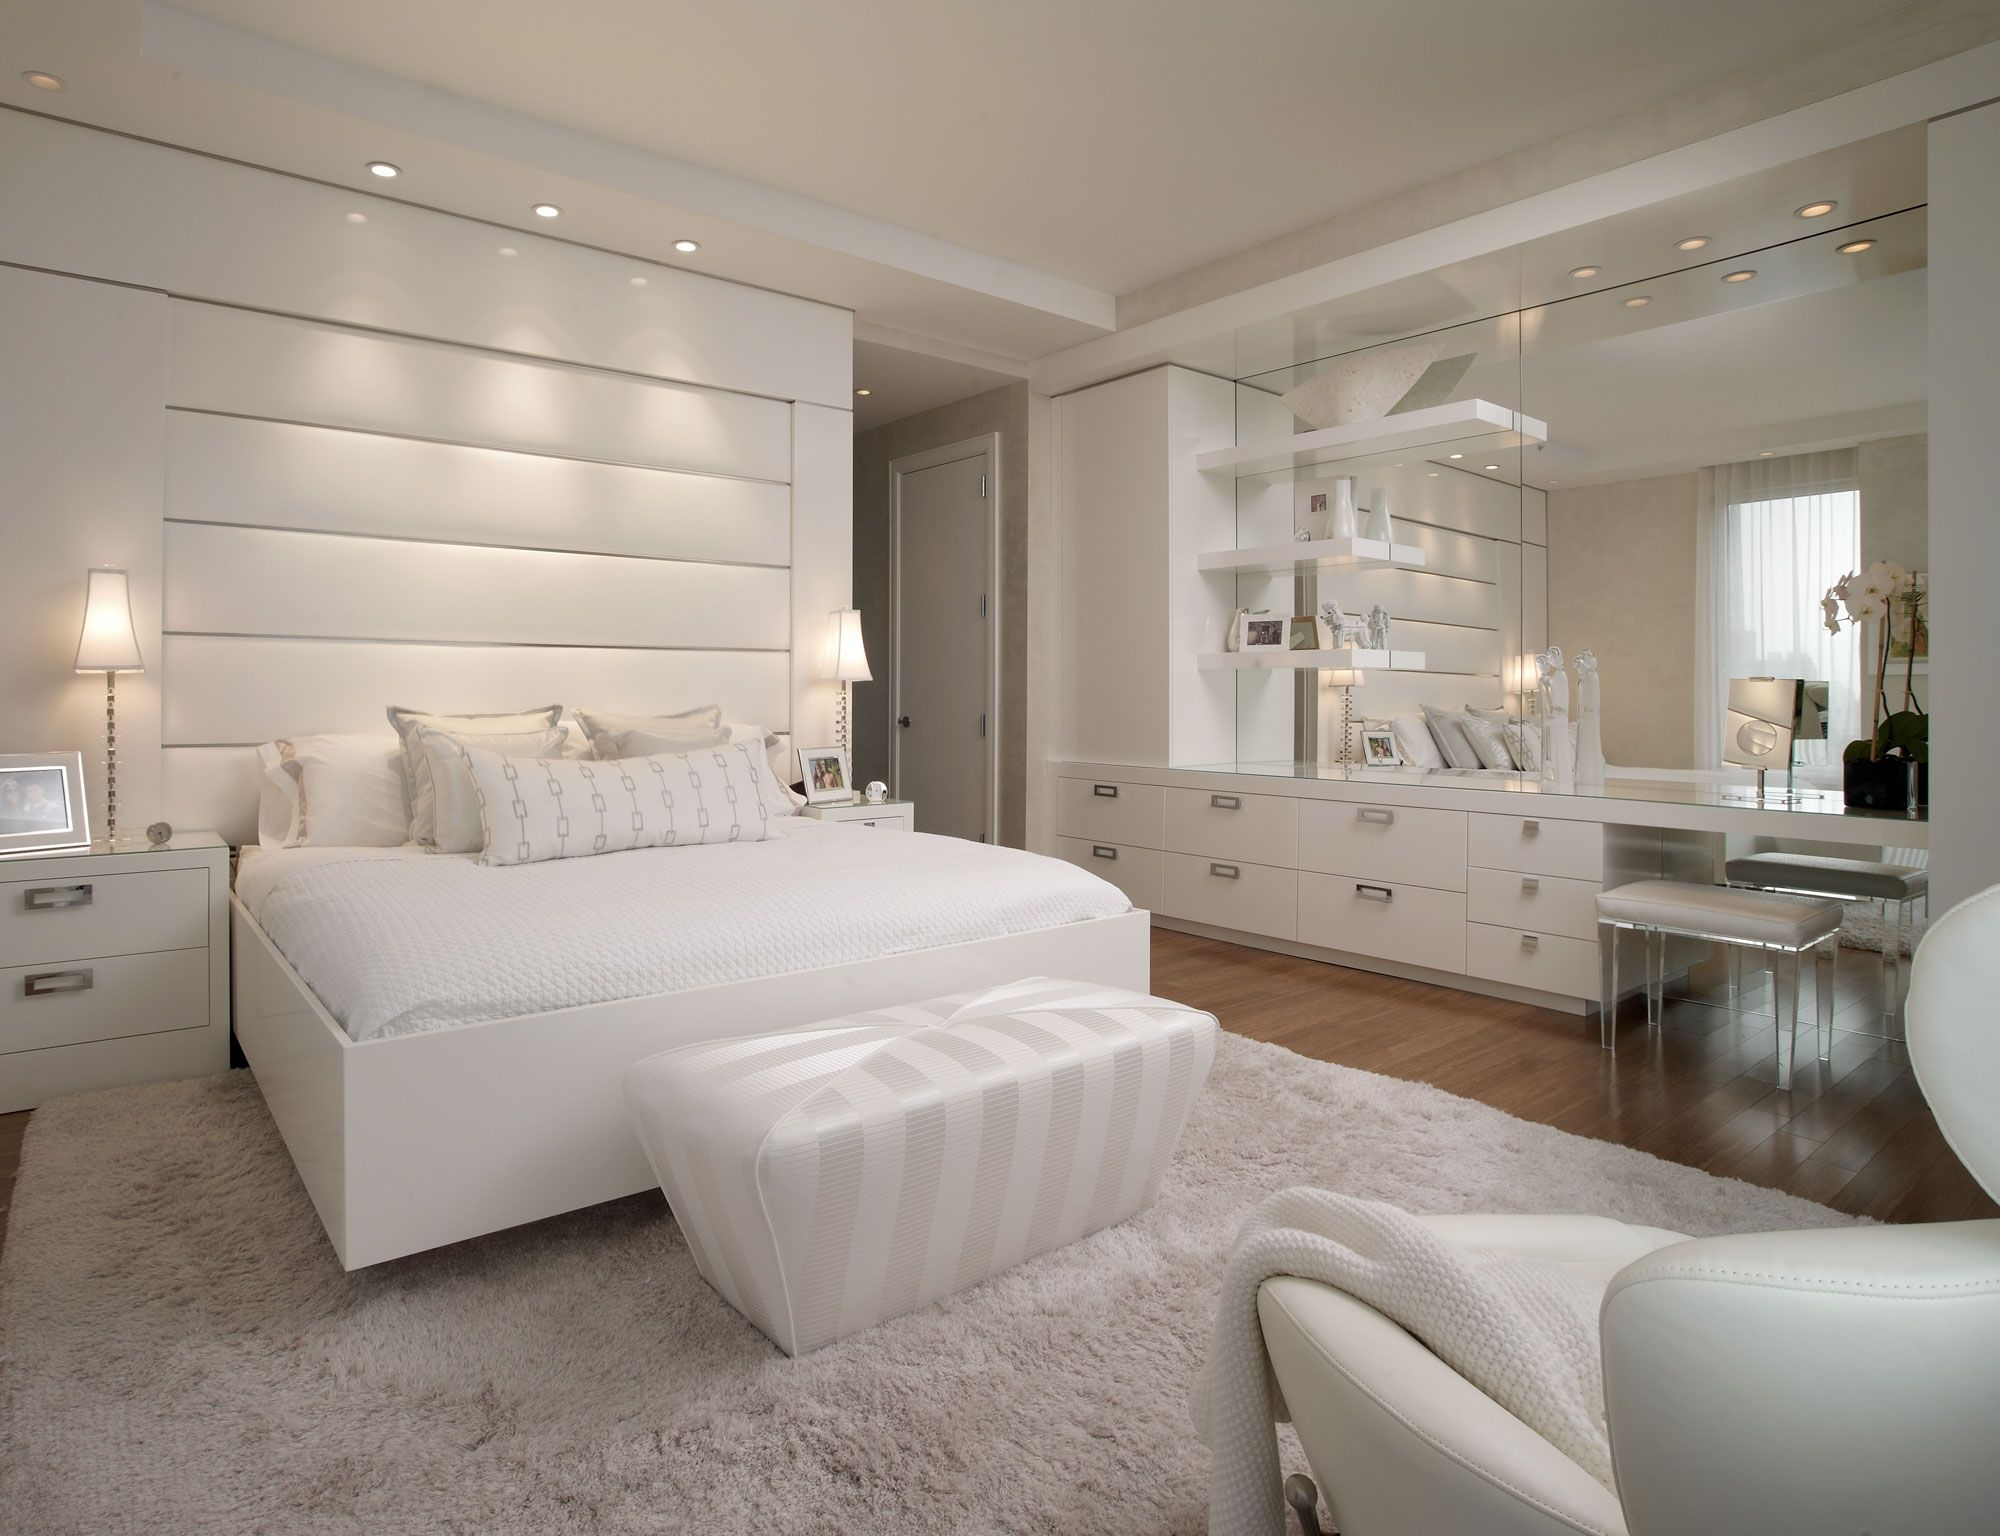 Best Luxury All White Bedroom Decorating Ideas Amazing Glamorous Bedroom Look Luxury White Scheme 400 x 300